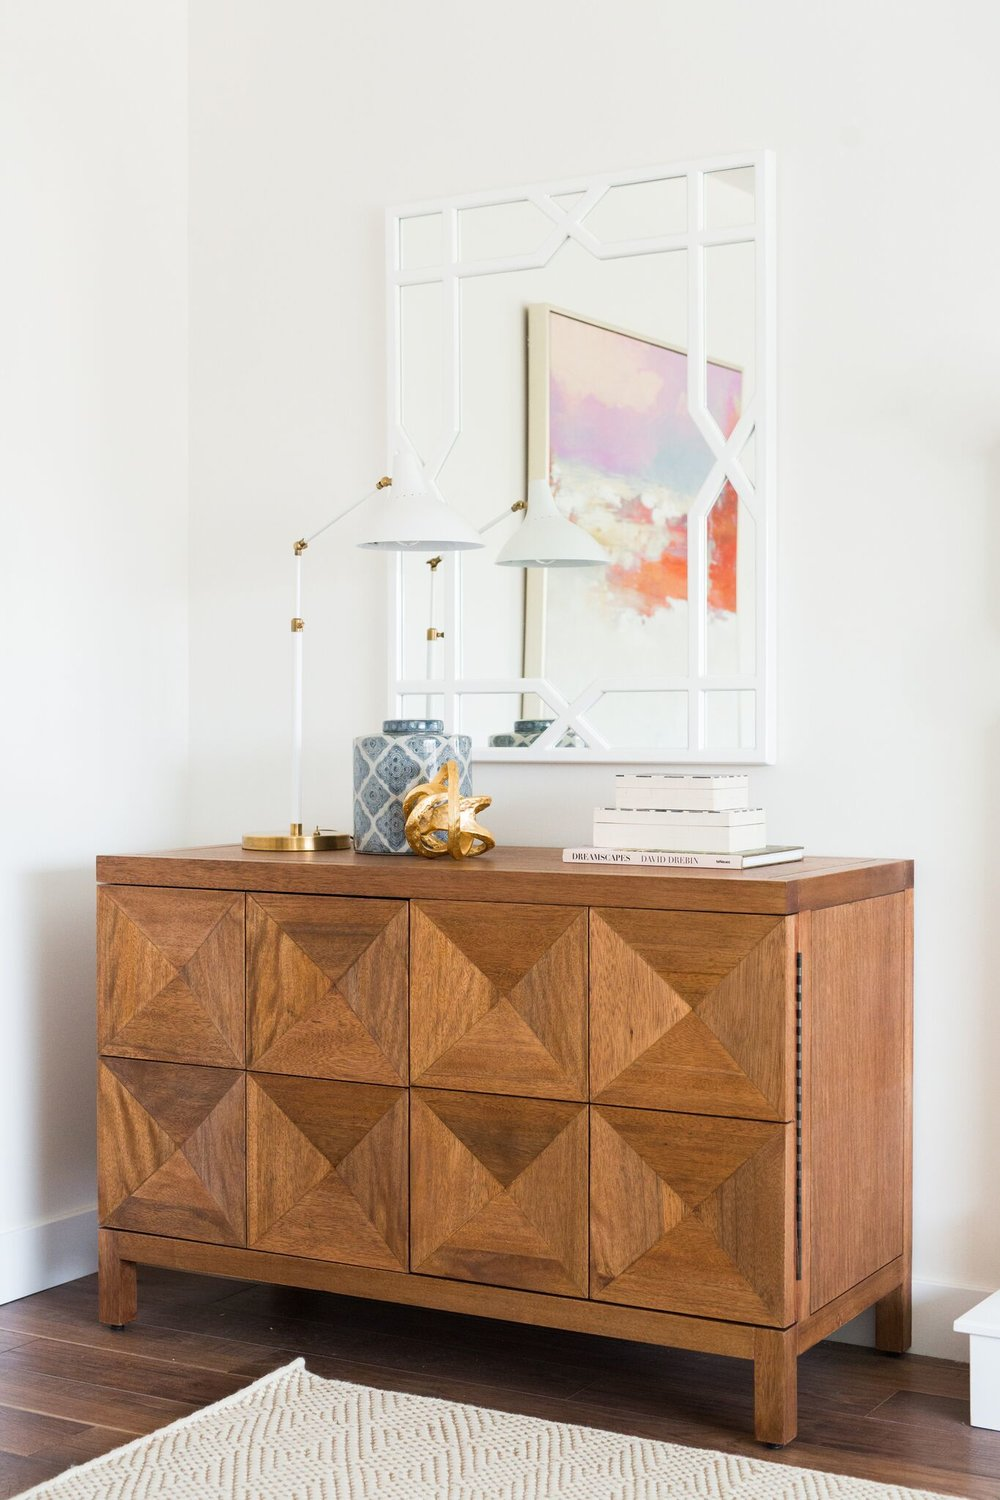 Drawer details on wooden hutch in living room